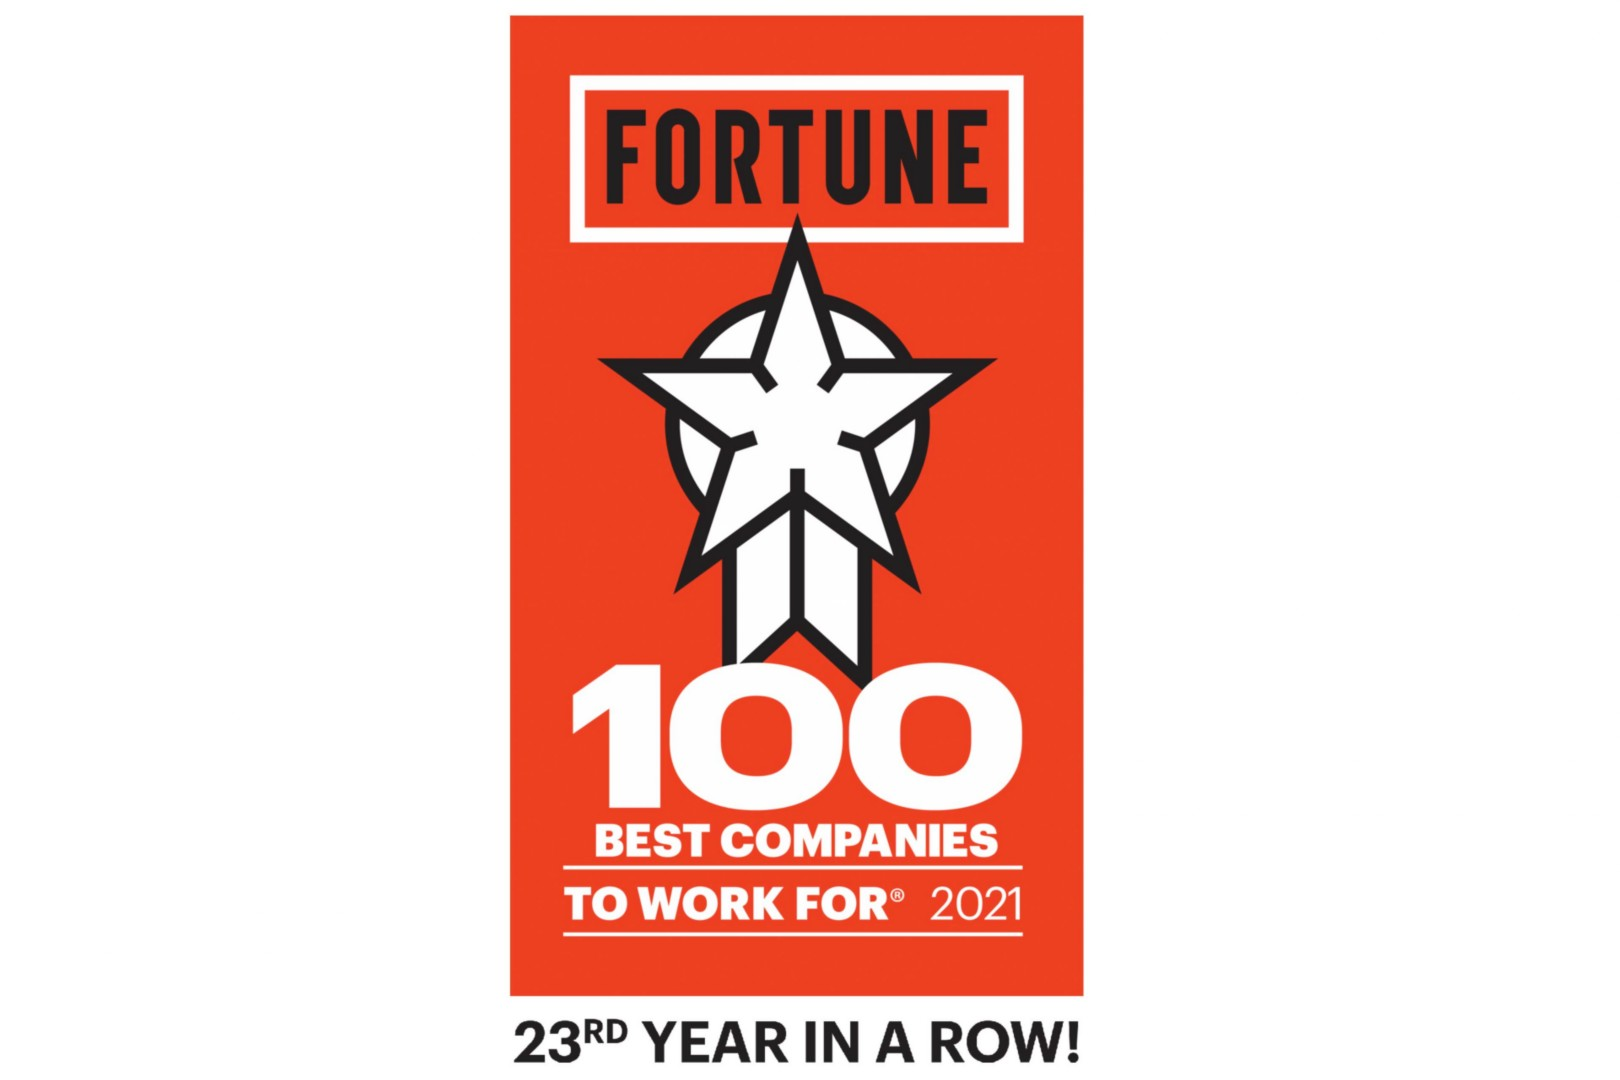 FORTUNE 100 Best Companies to Work For® 2021